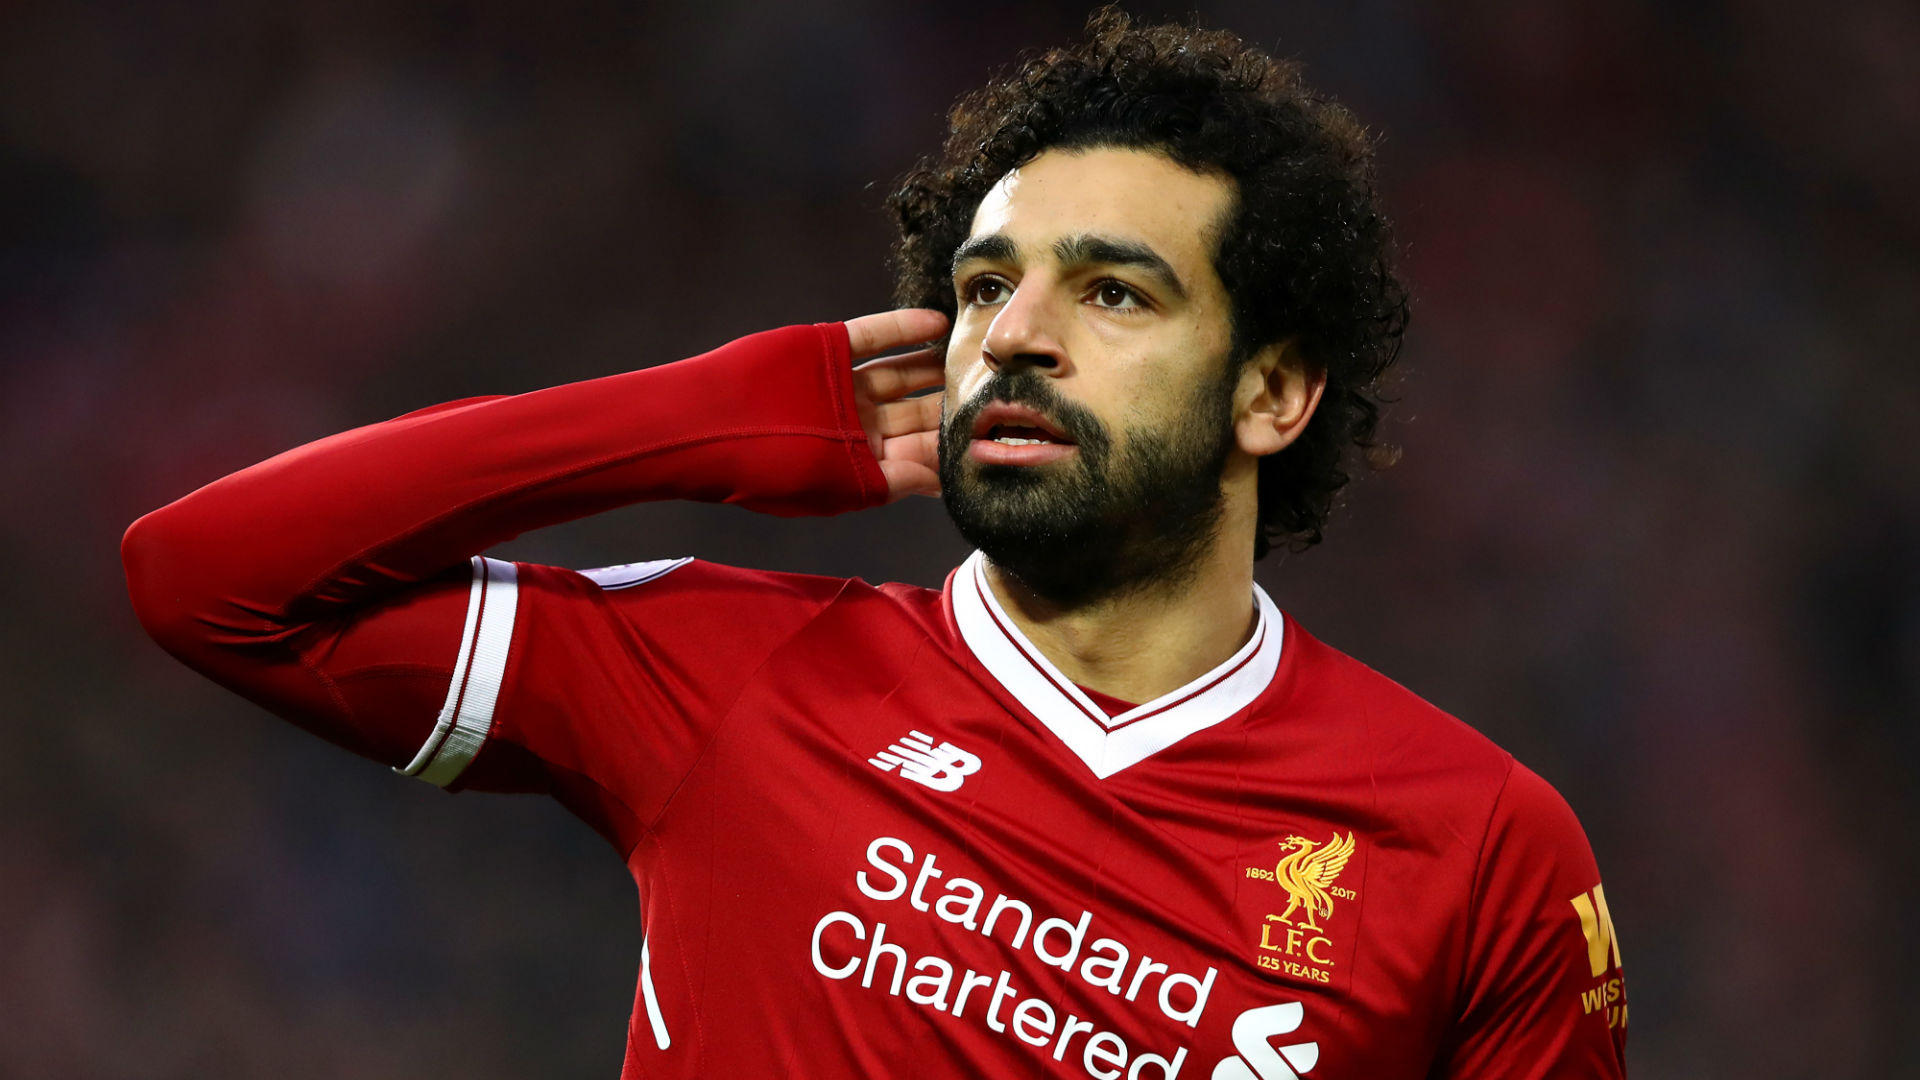 Even Mohamed Salah is revelling in Manchester United's Champions League exit